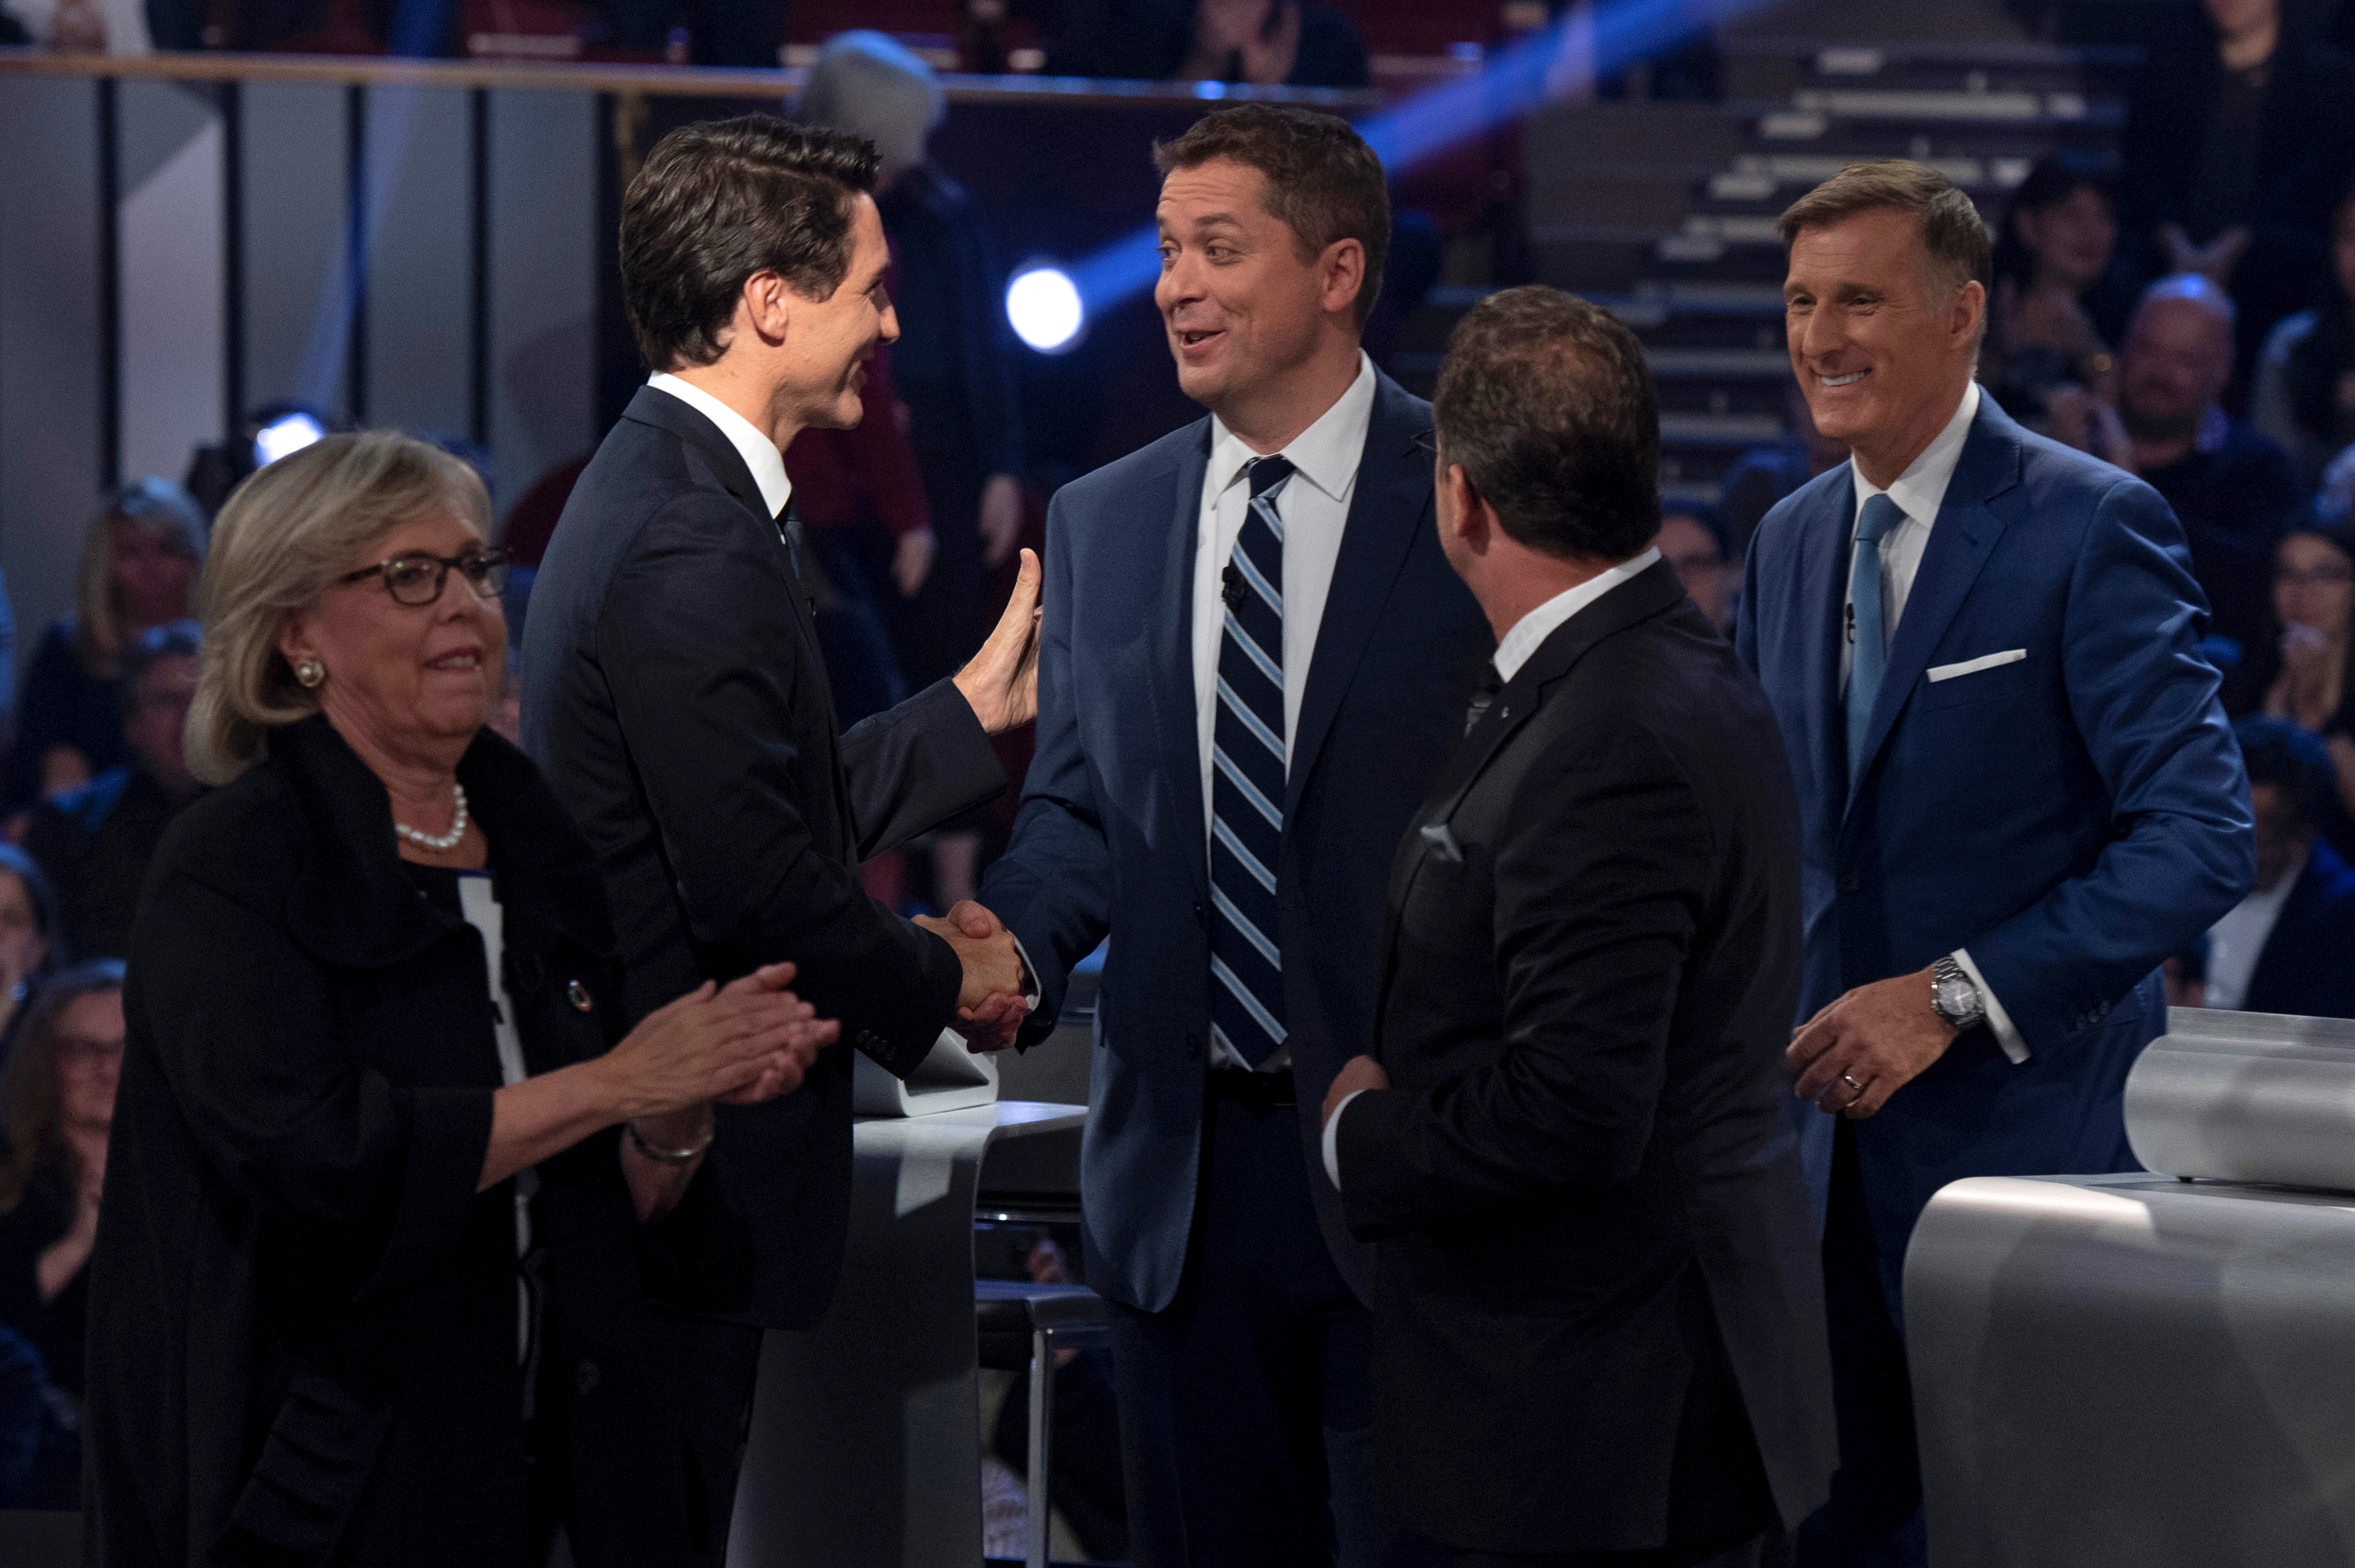 Liberal leader Justin Trudeau shakes hands with Conservative leader Andrew Scheer as People's Party of Canada leader Maxime Bernier, Bloc Quebecois leader Yves-Francois Blanchet and Green Party leader Elizabeth May leave the stage following the Federal leaders debate in Gatineau, Quebec, Canada October 7, 2019. Picture taken October 7, 2019. Justin Tang/Pool via REUTERS